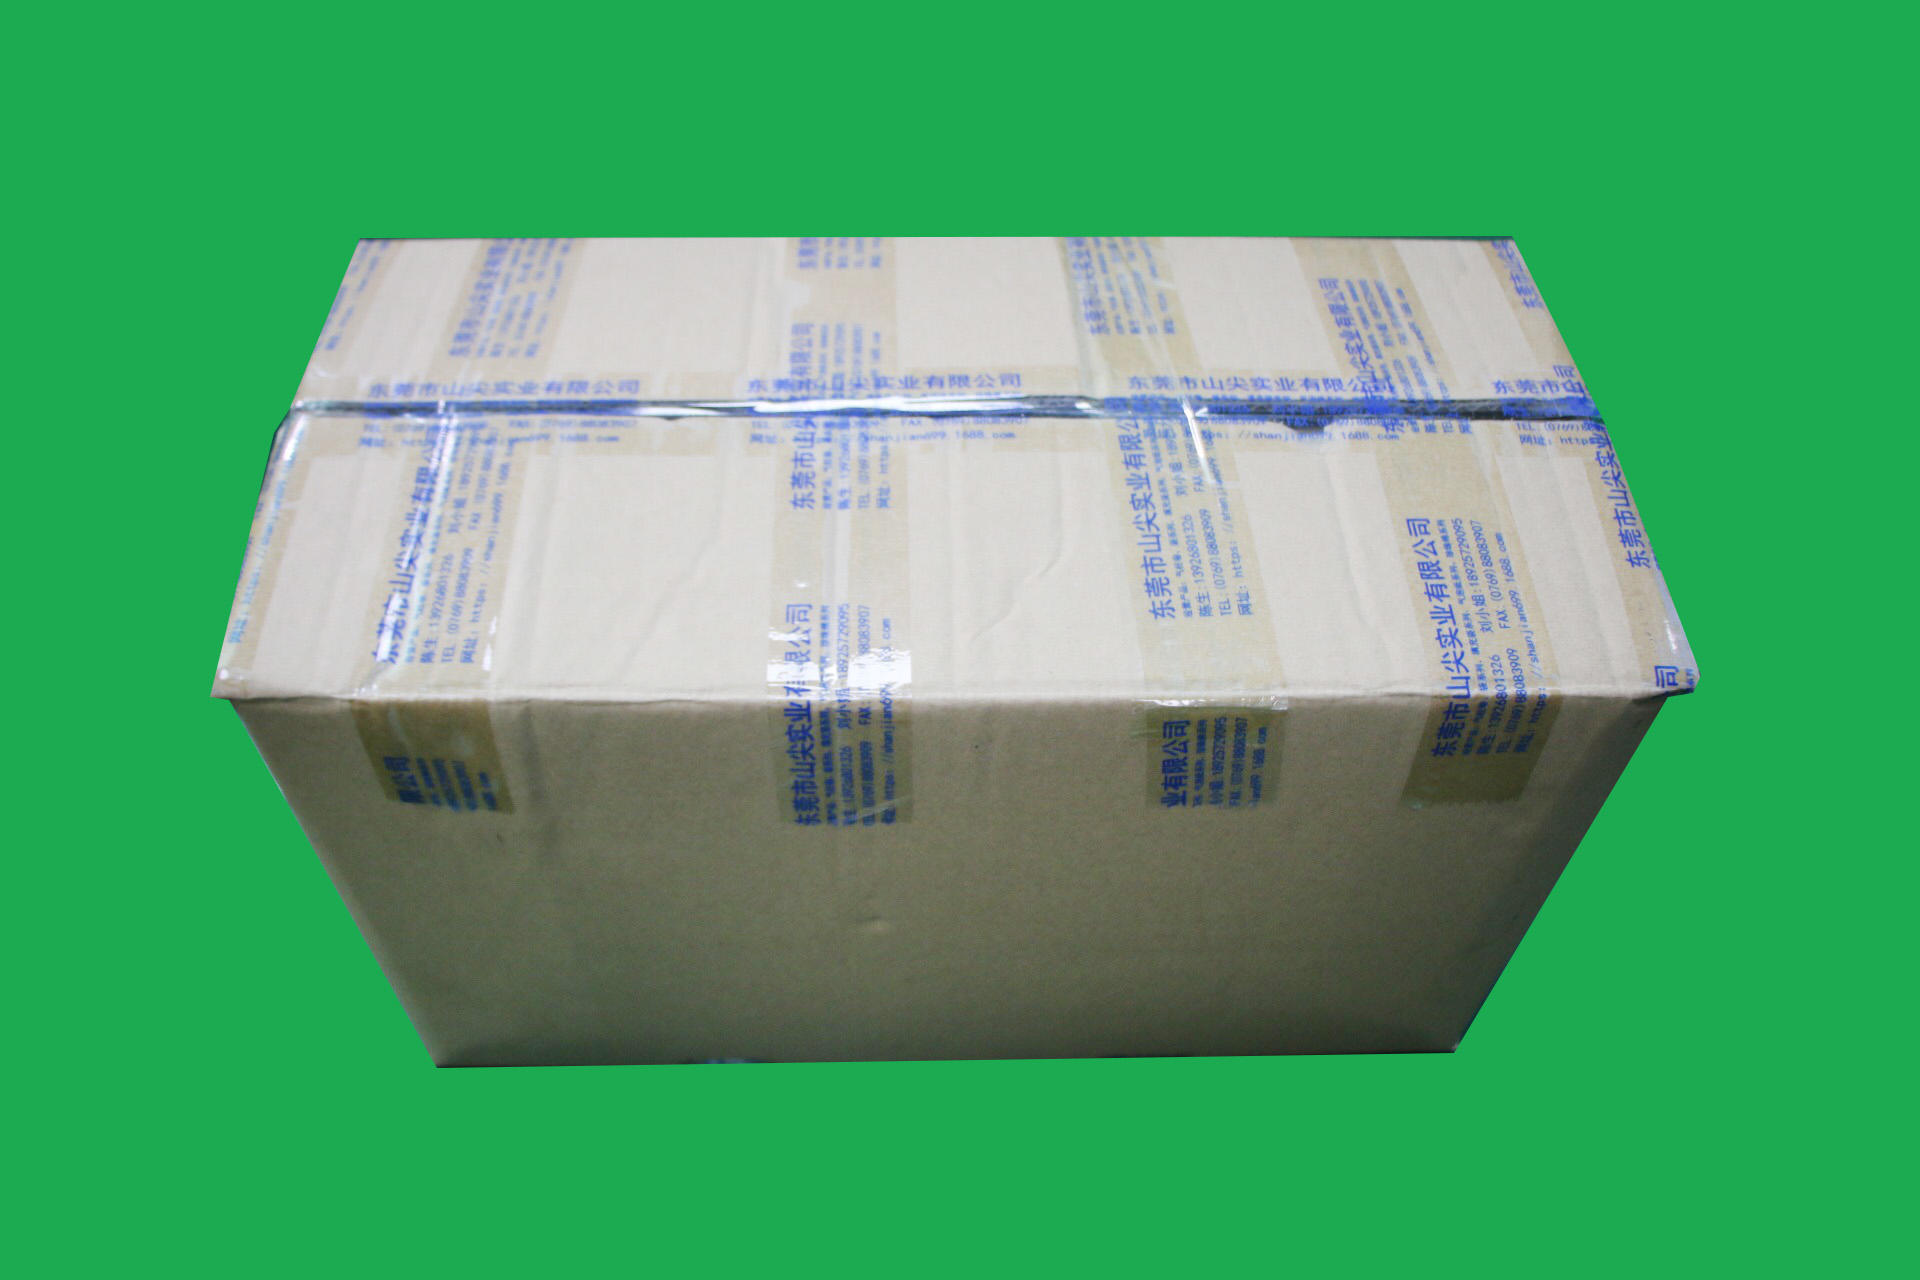 Sunshinepack ODM column air packaging Suppliers for goods